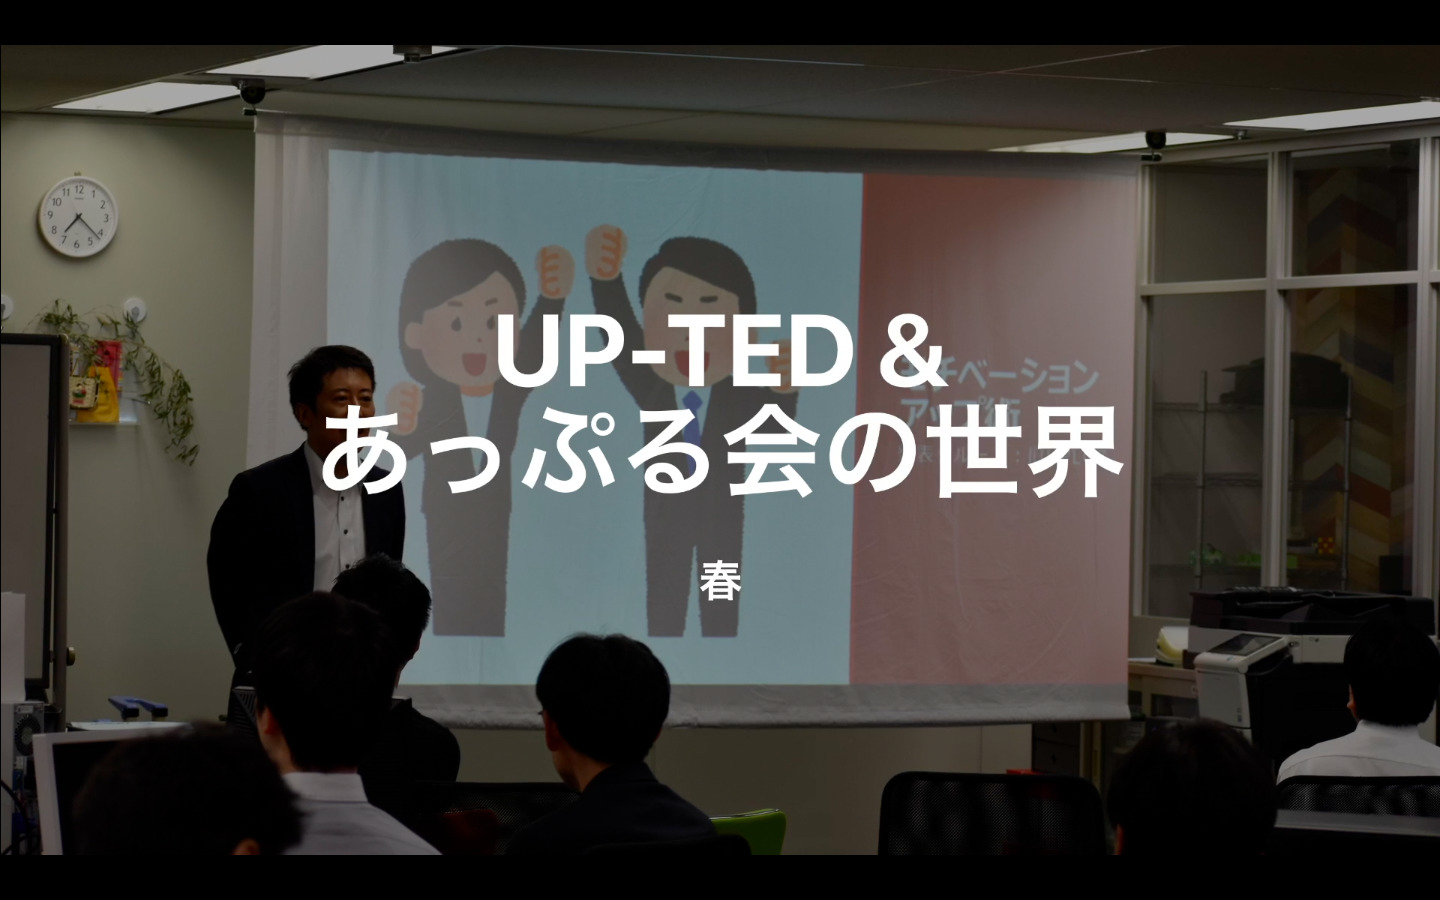 #Film_14 up-ted & あっぷる会